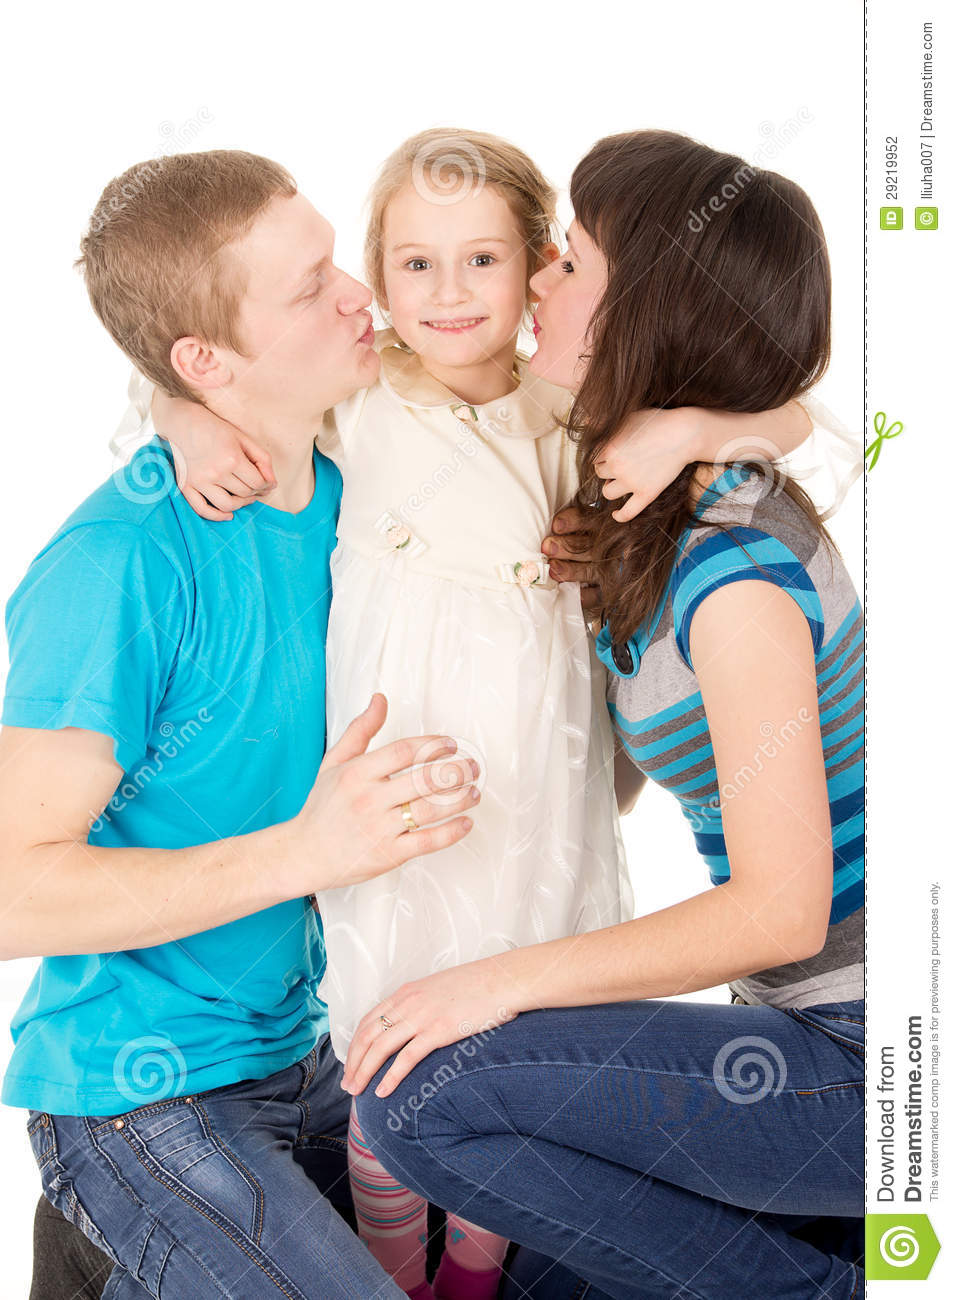 What to give mom and dad 9